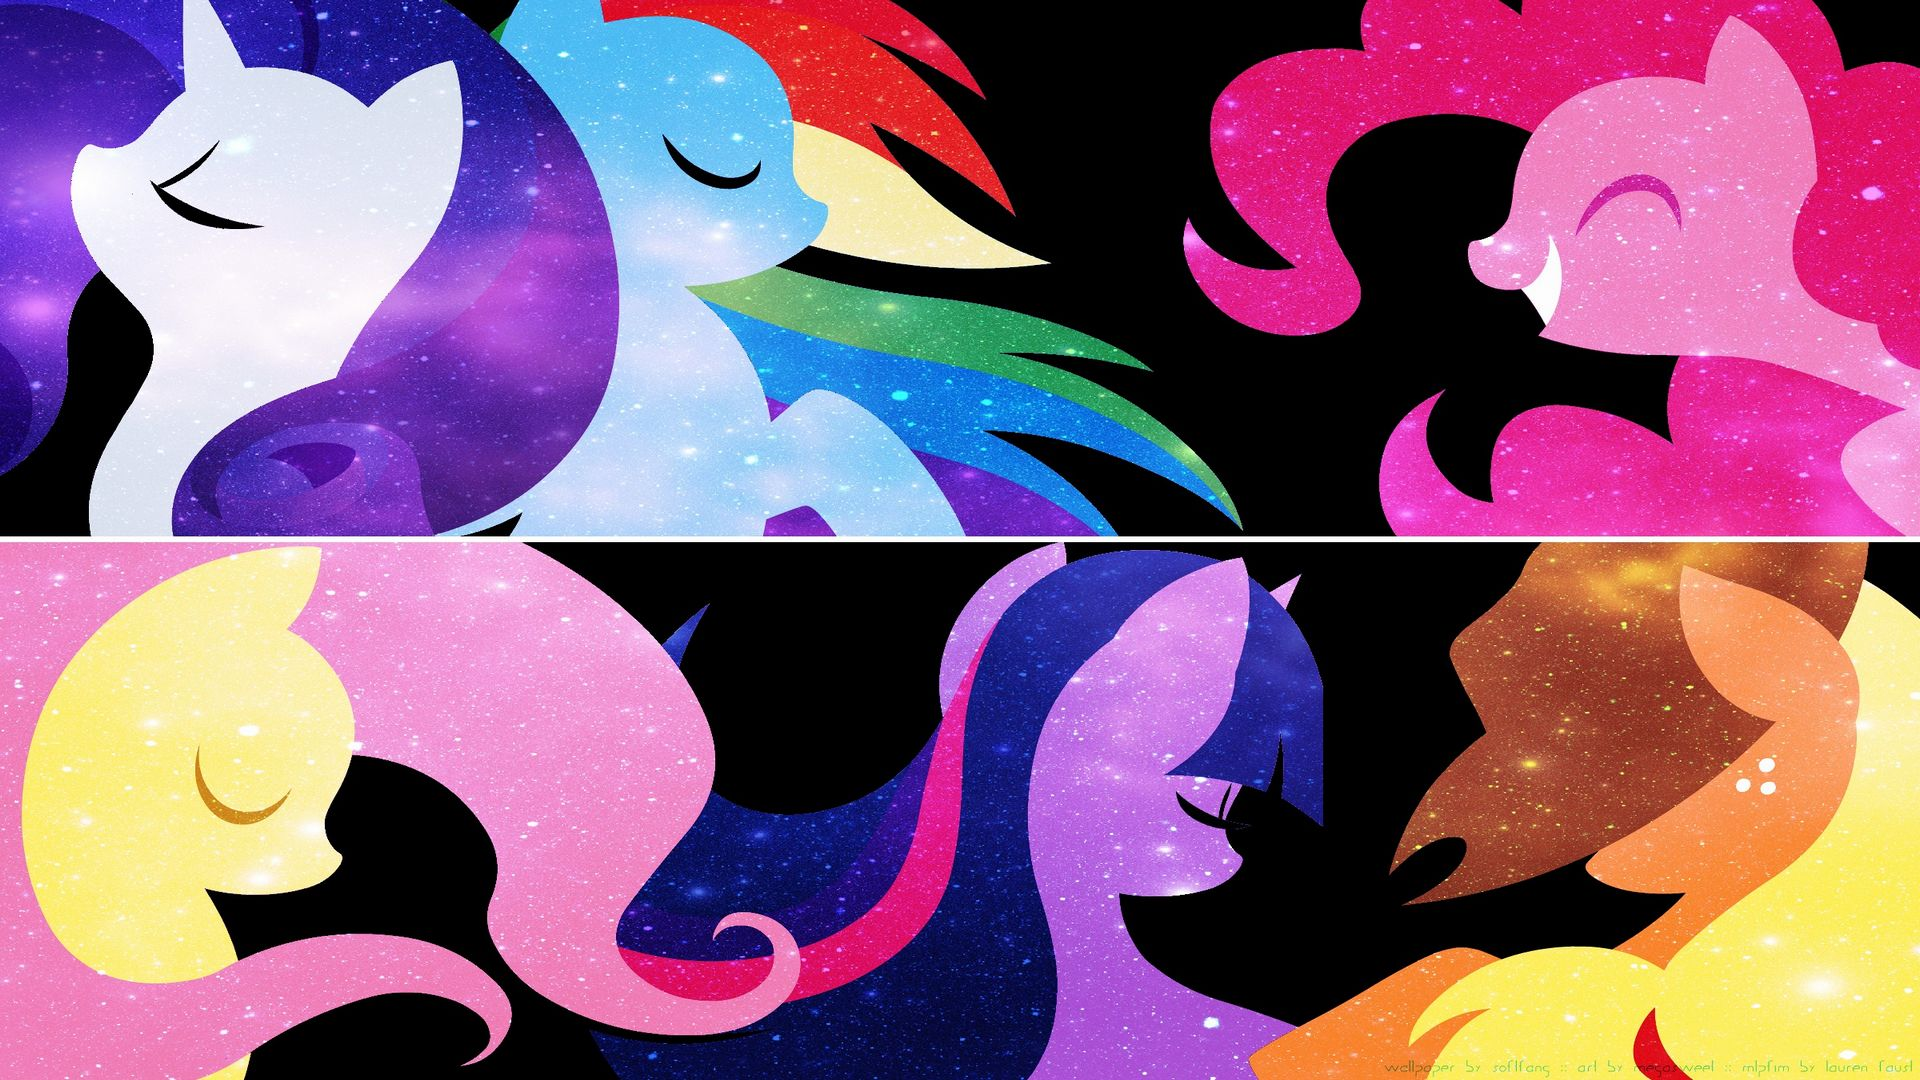 mlp background pony wallpapers - photo #13